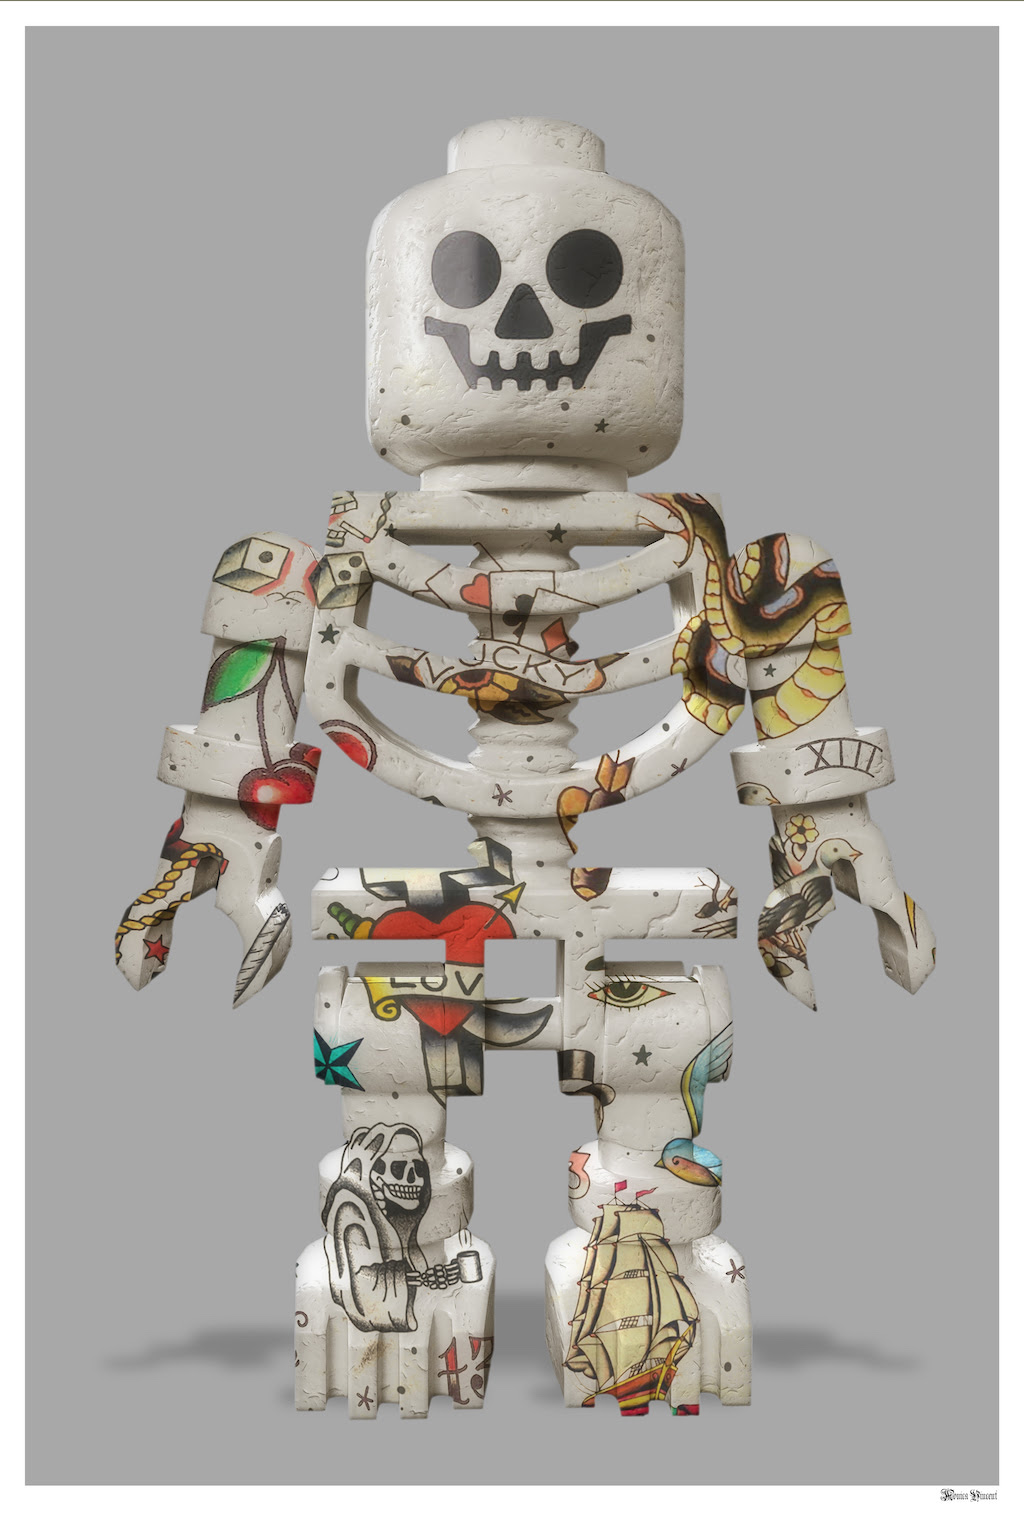 Lego Skeleton (Grey Background) - Small  by Monica Vincent